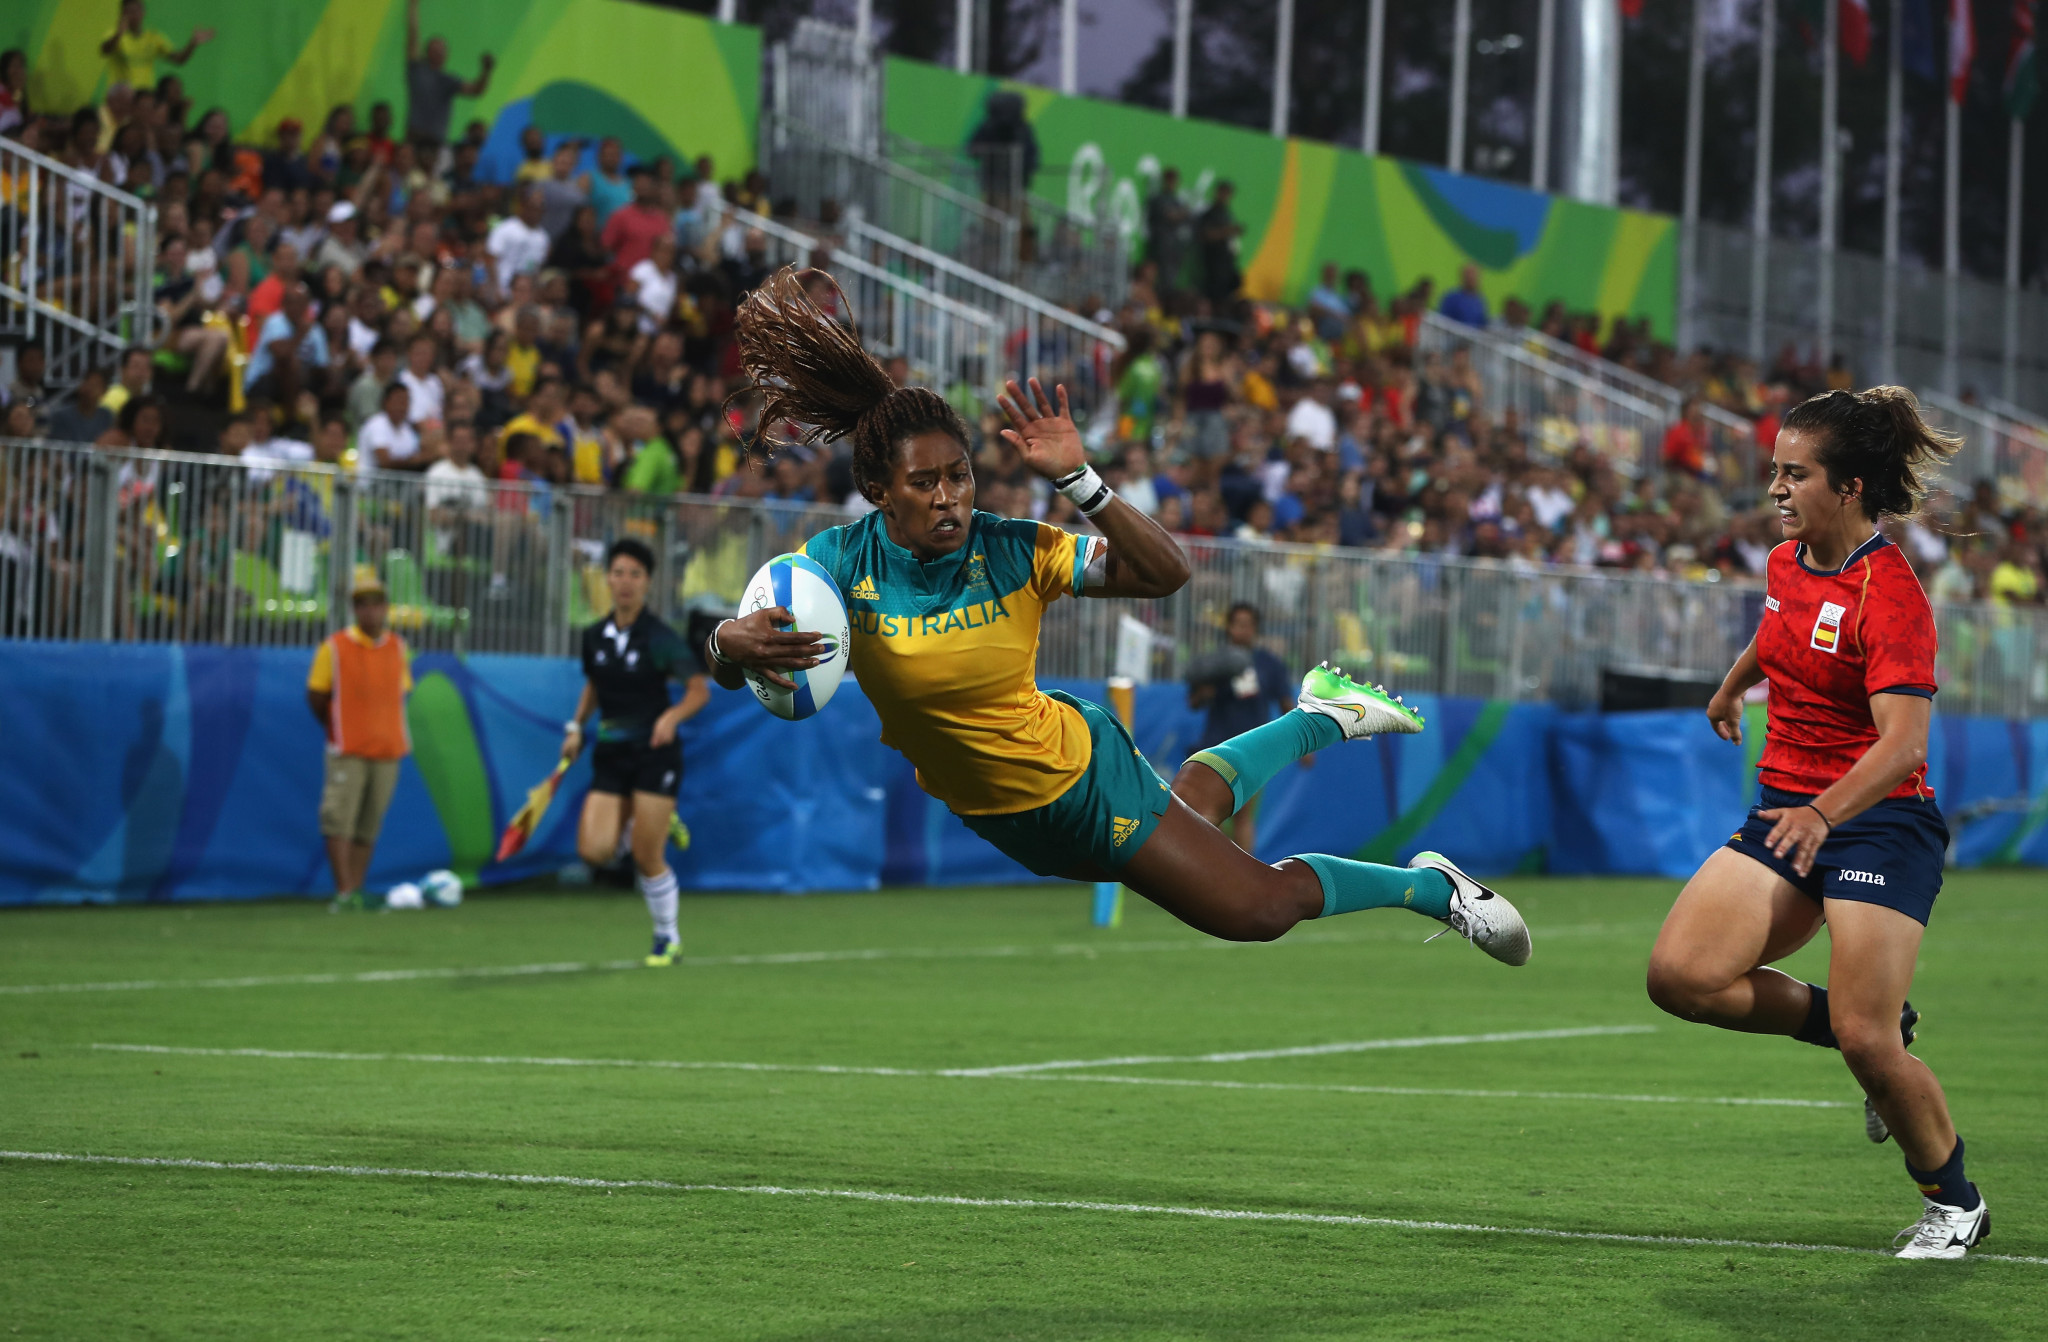 Rugby sevens made its Olympic debut in 2016 ©Getty Images